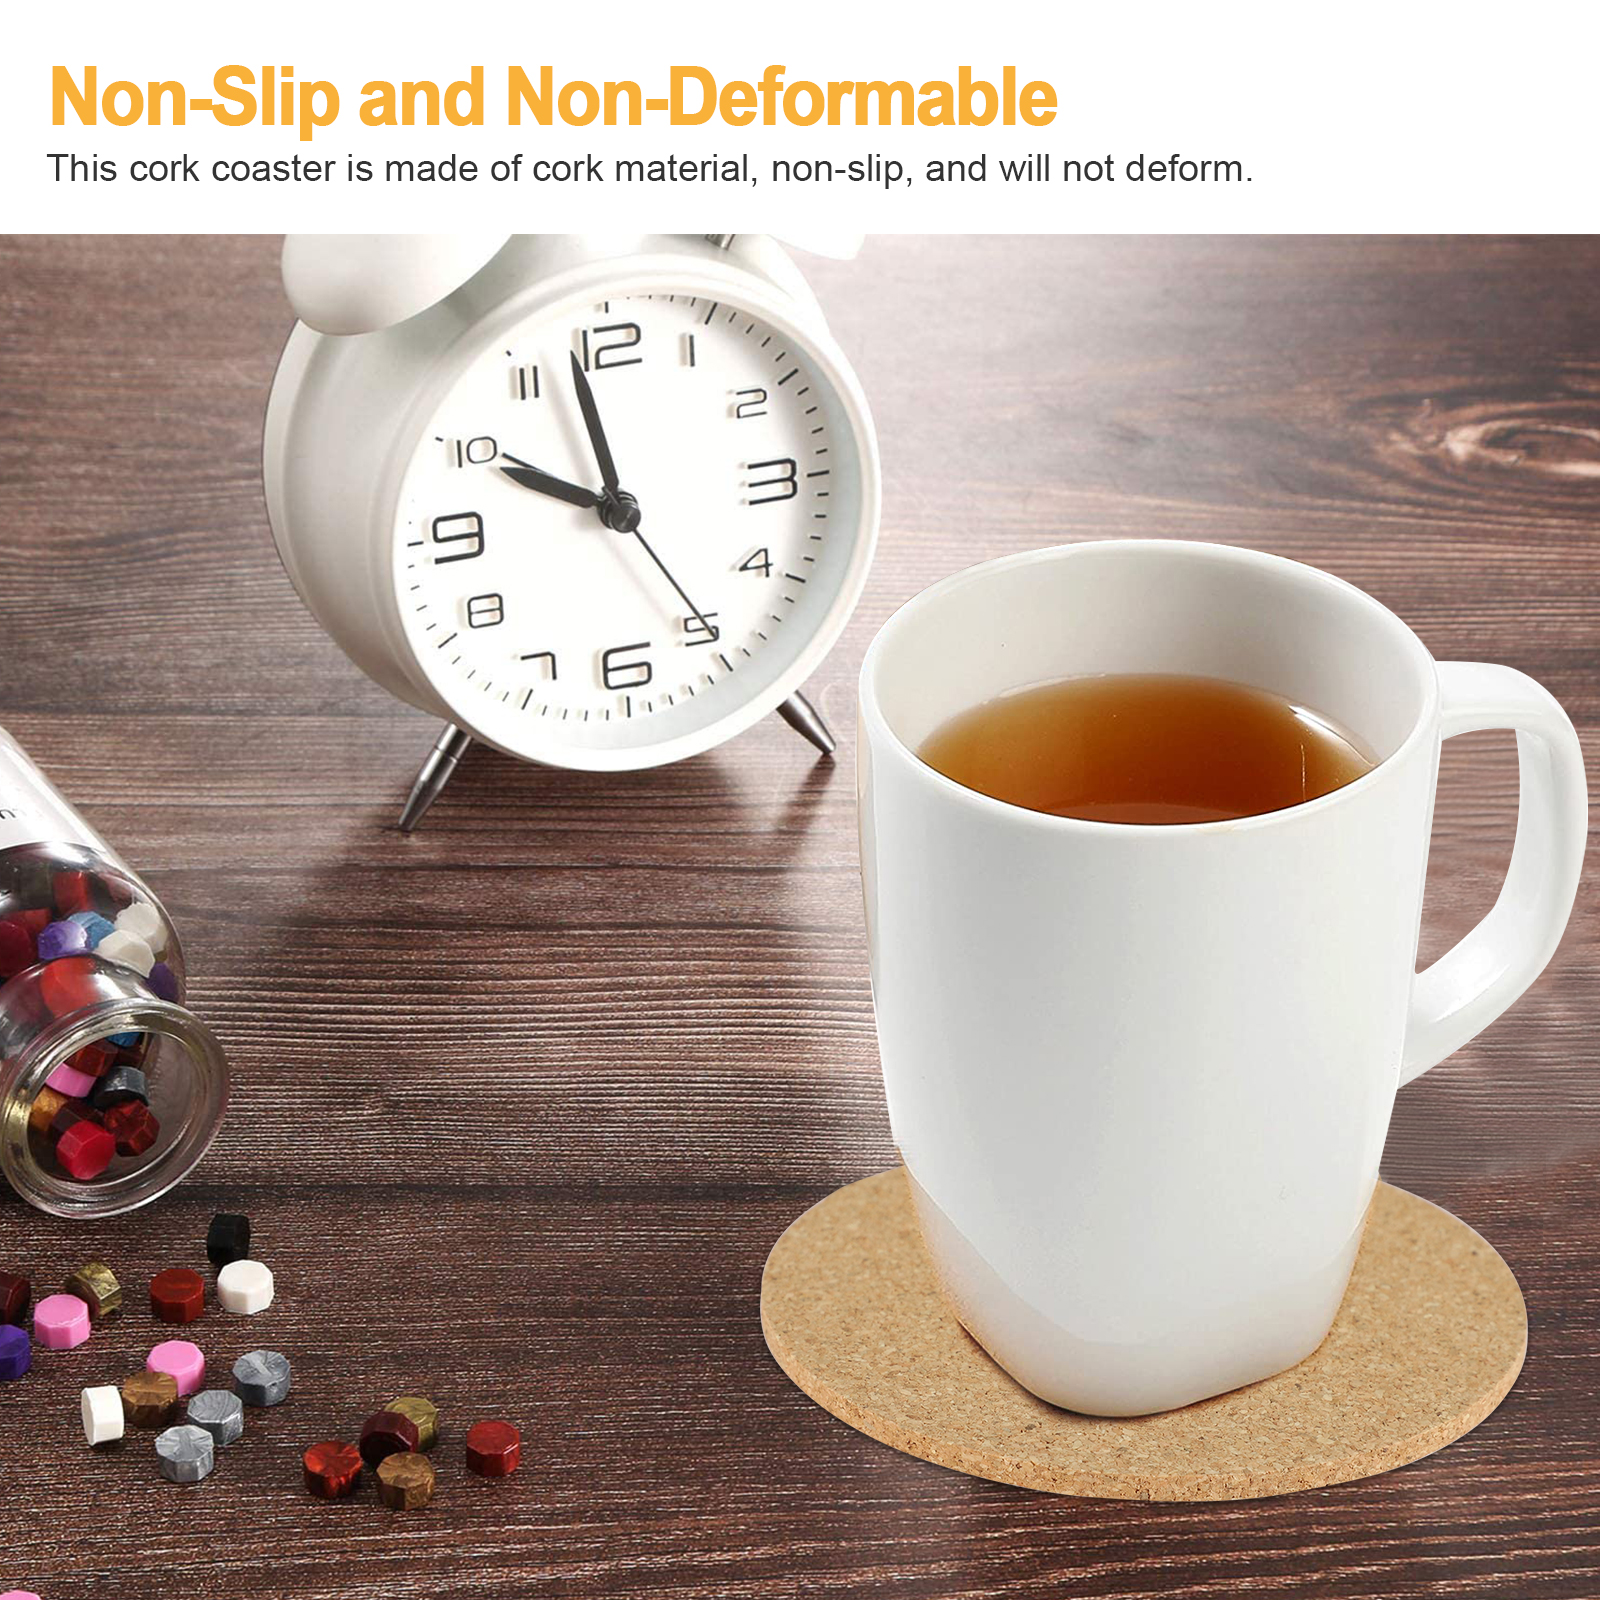 8-16pcs-Cork-Drink-Coasters-Tea-Coffee-Absorbent-Round-Cup-Mat-Table-Decor-Home thumbnail 2